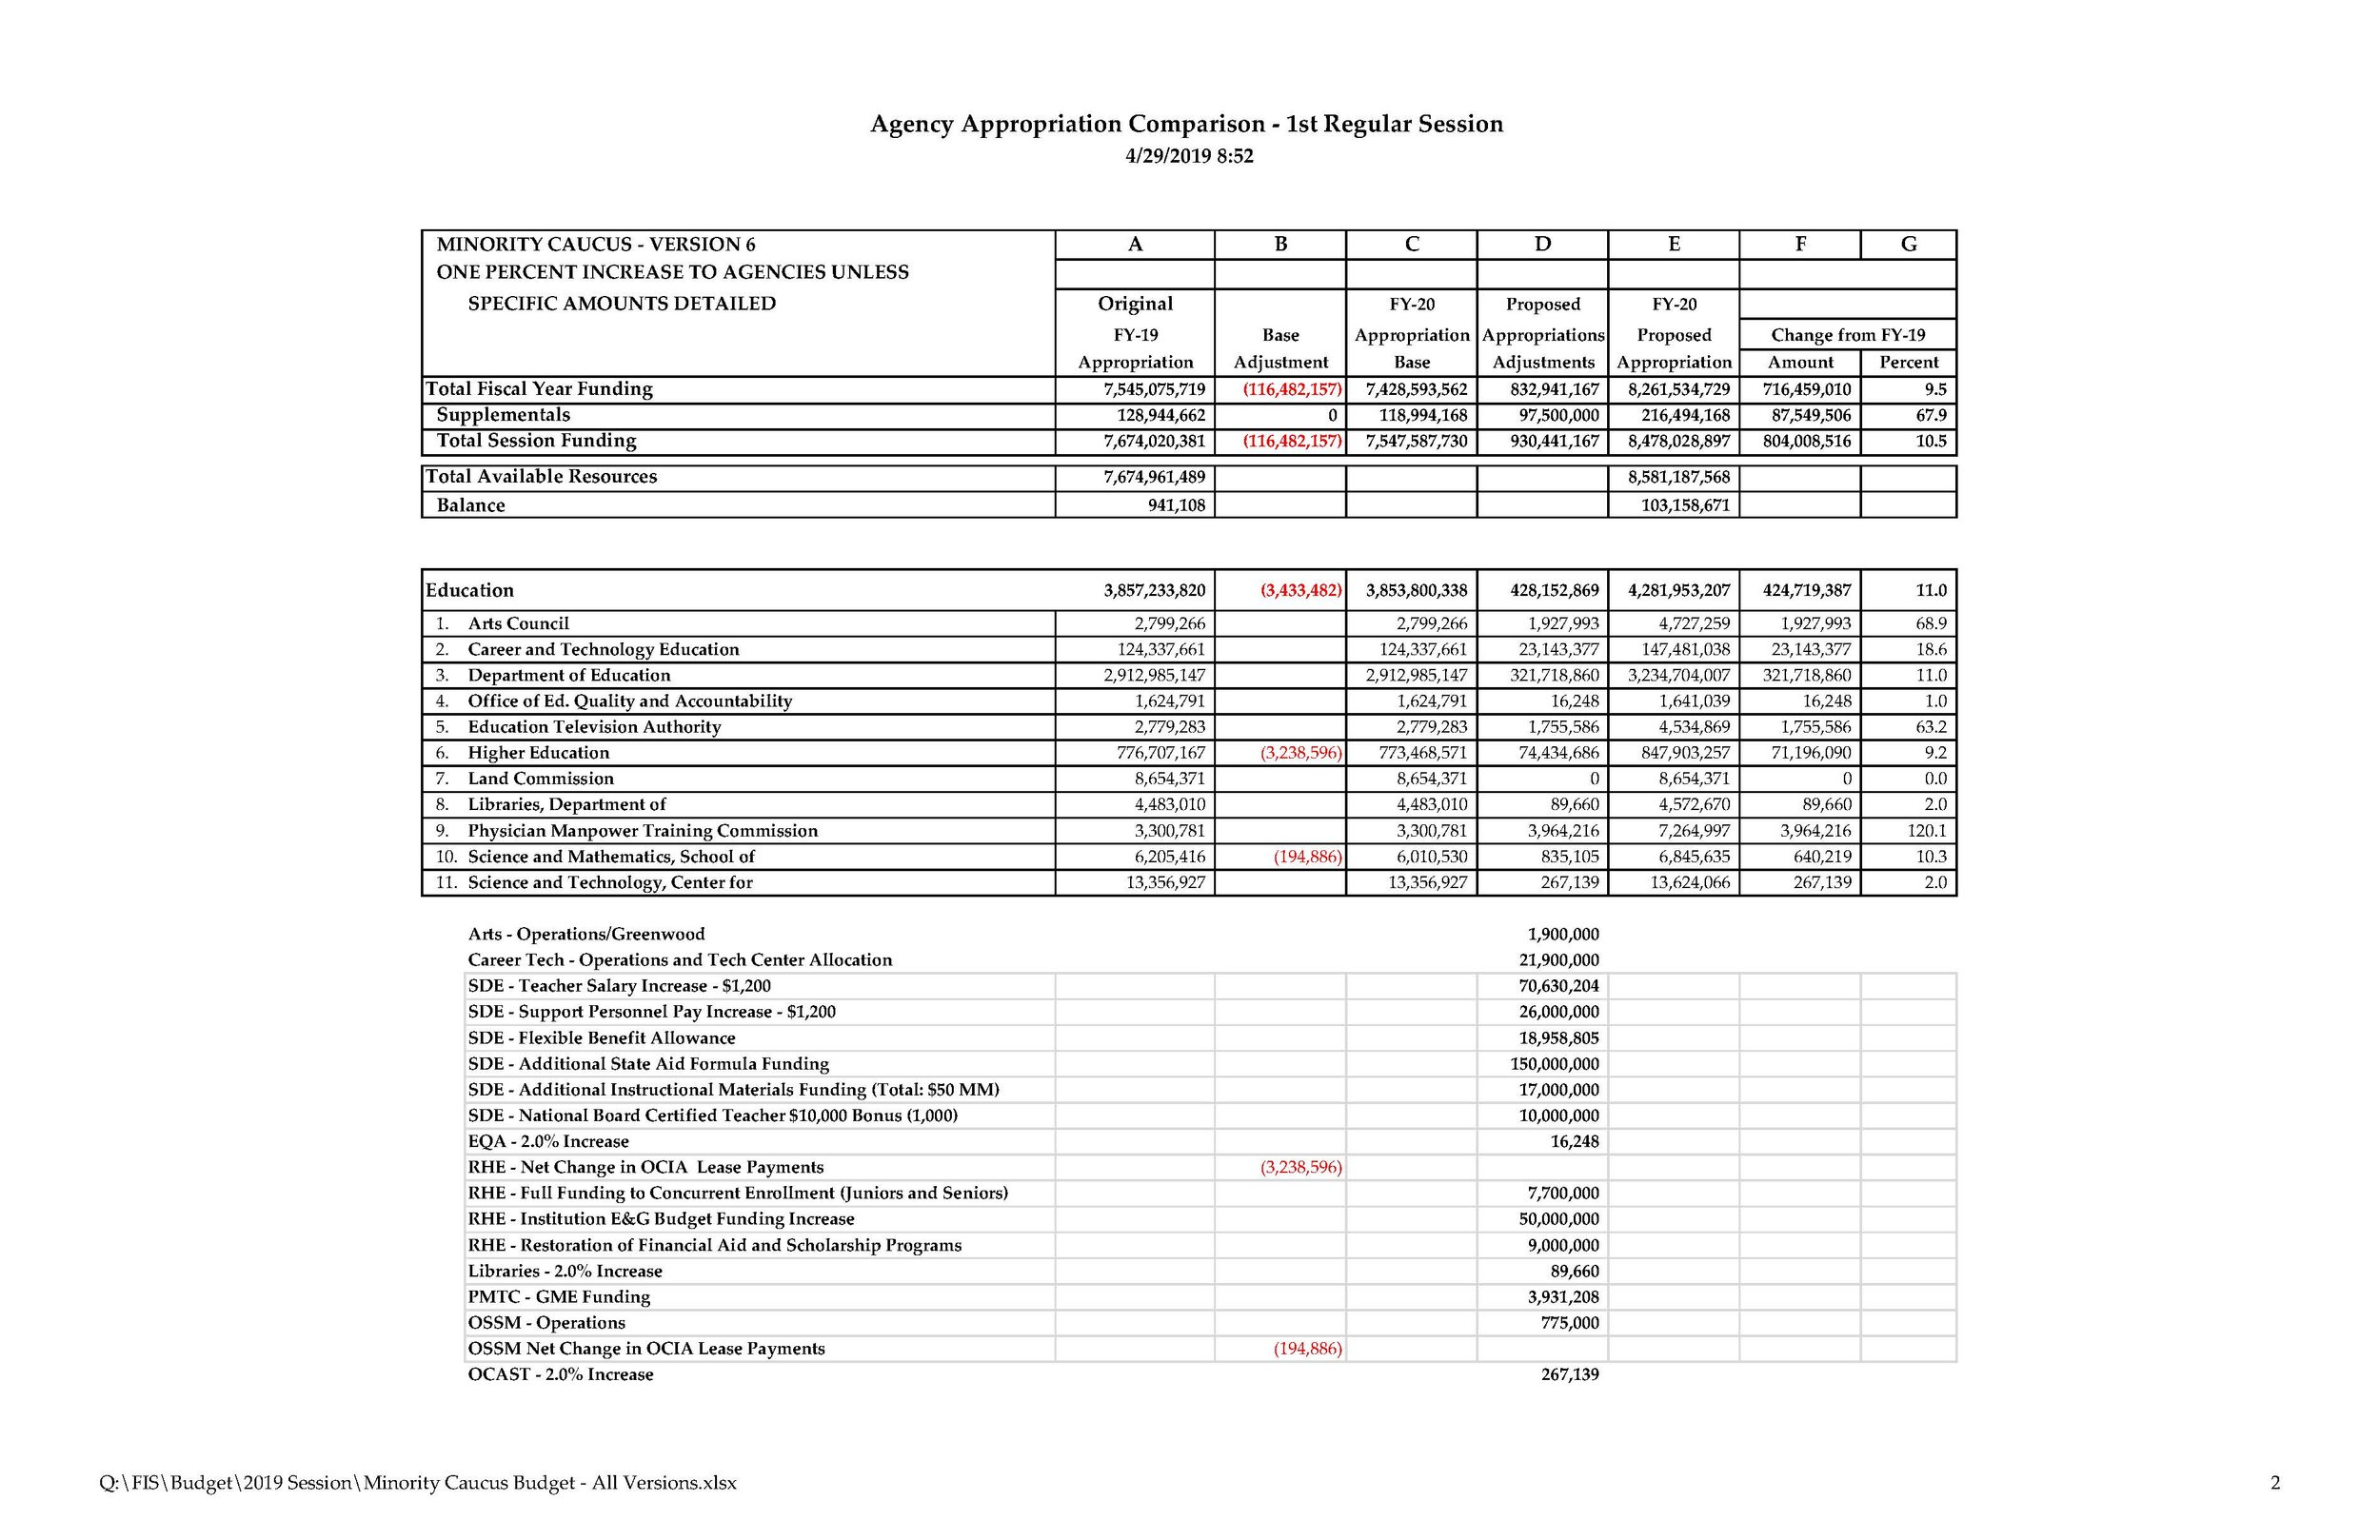 Minority Caucus Budget - All Versions_Page_02.jpg